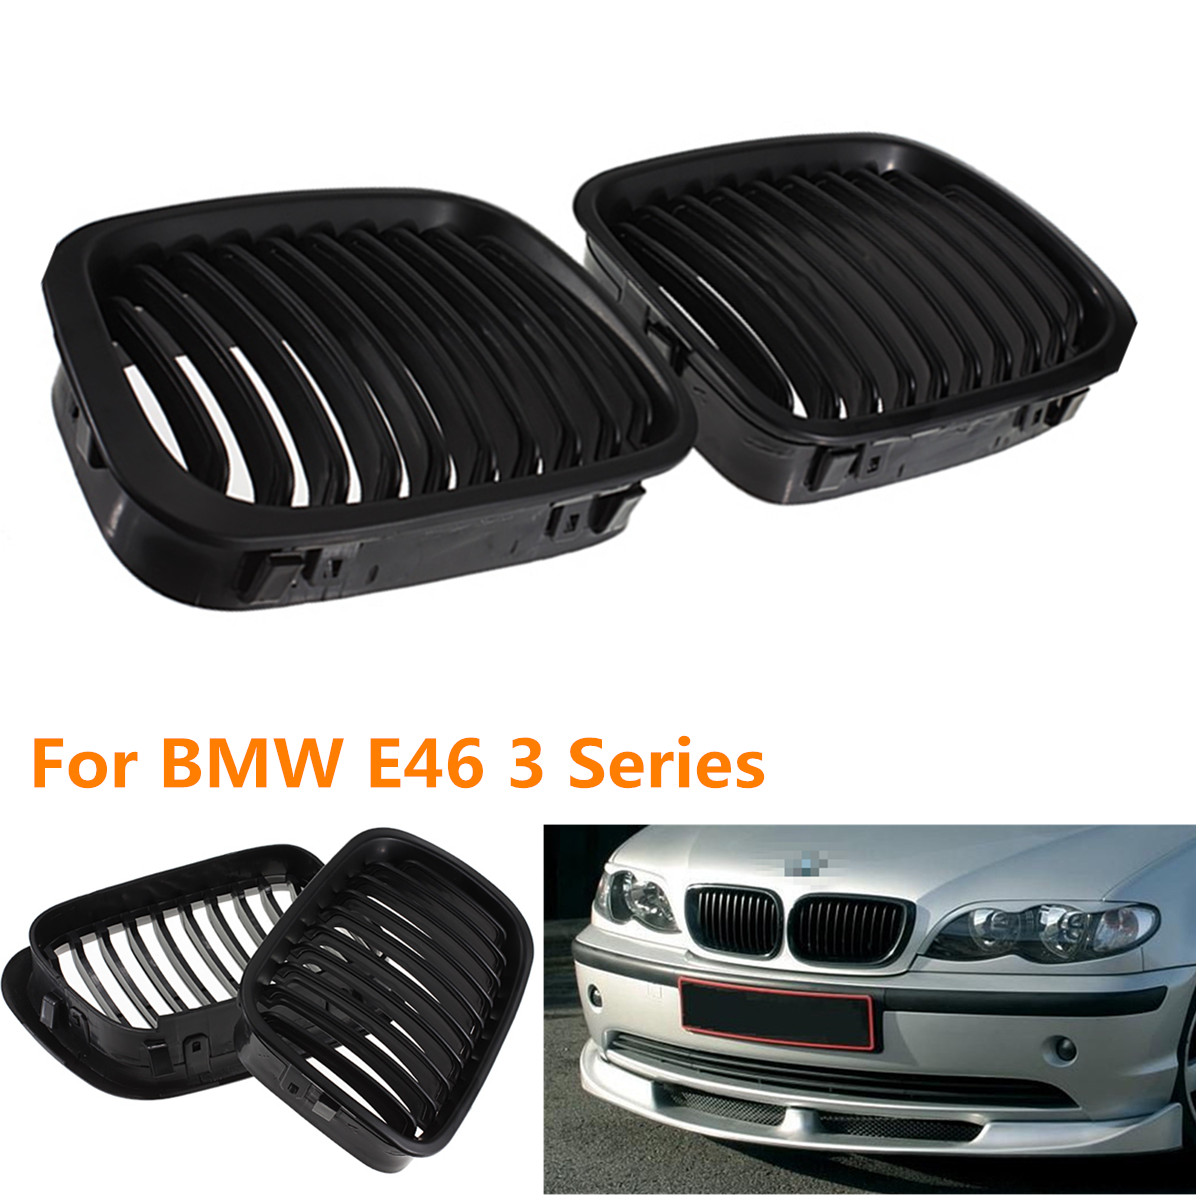 2Pcs BLACK Car GRILLE GRILL for BMW E46 1998-2001 4 DOOR 320i 323i 325i 328i 330i 1998-2001 мальцева н навязчивый мотив 1990 2001